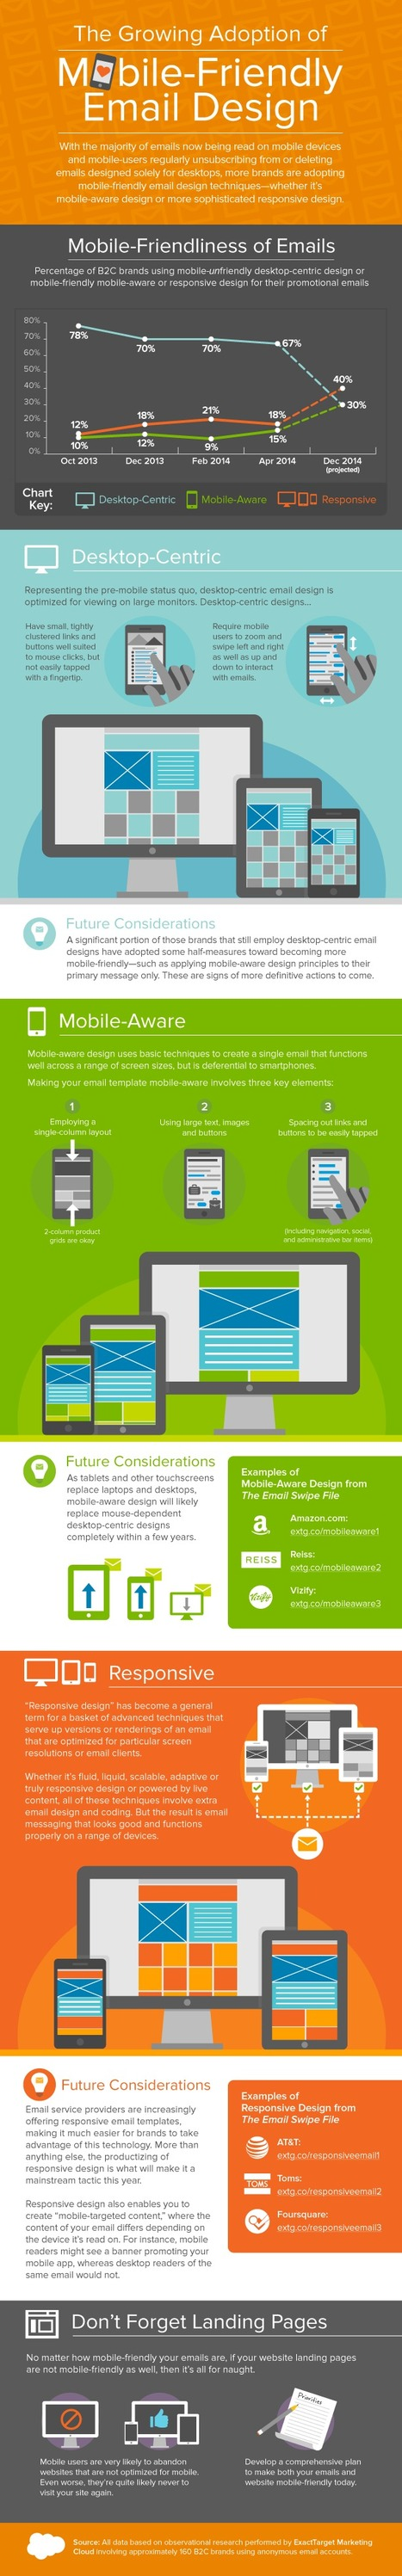 Infographic: The Growing Adoption of Mobile-Friendly Email Design - Email Marketing Rules | JOIN SCOOP.IT AND FOLLOW ME ON SCOOP.IT | Scoop.it